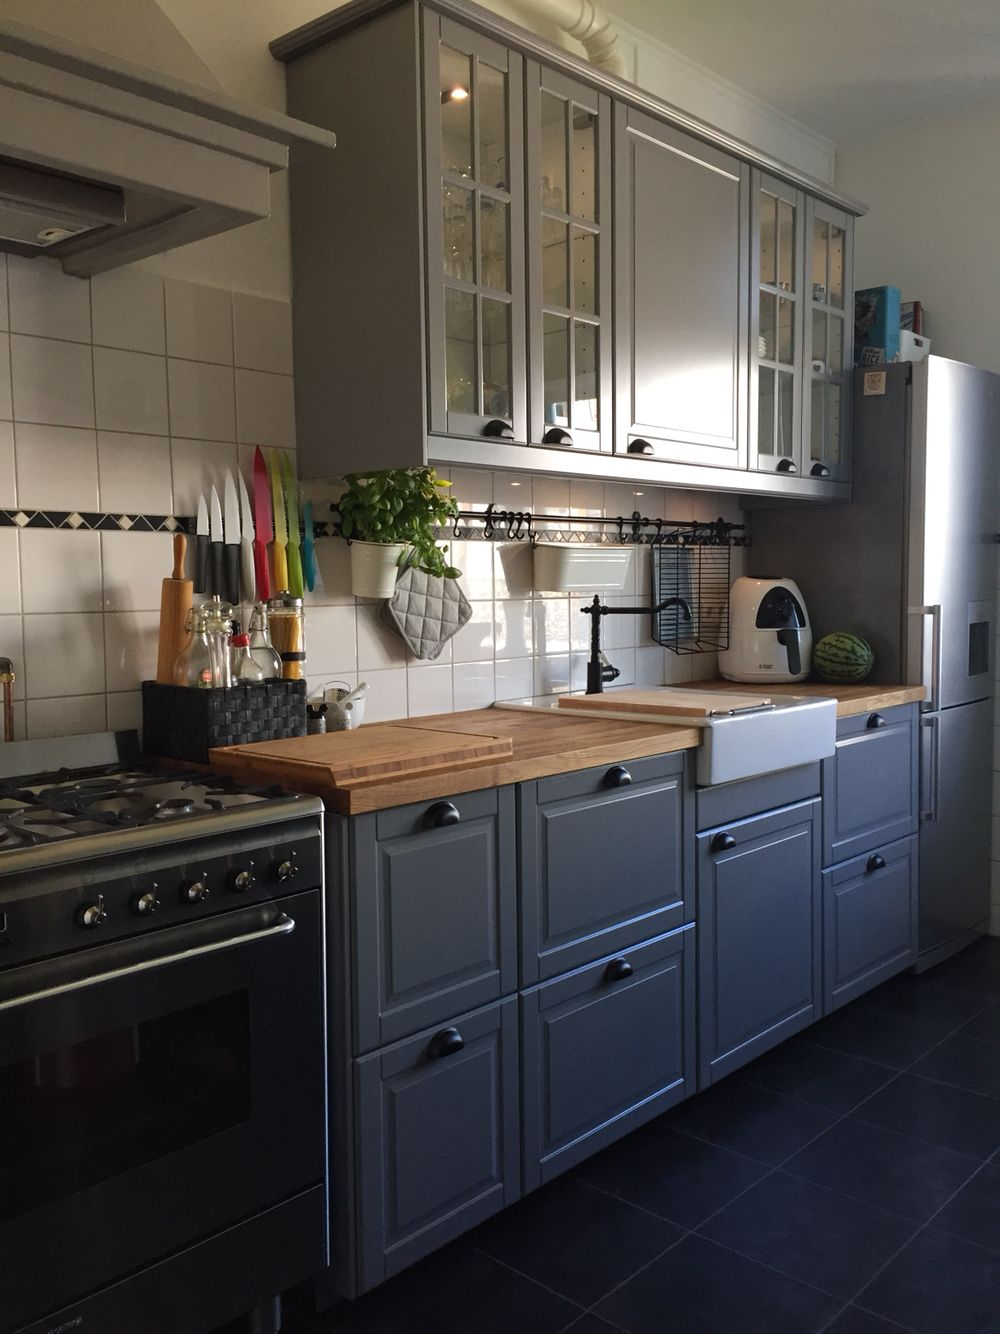 Best New Kitchen Ikea Bodbyn Grey Cuisine Bodbyn Cuisine 640 x 480